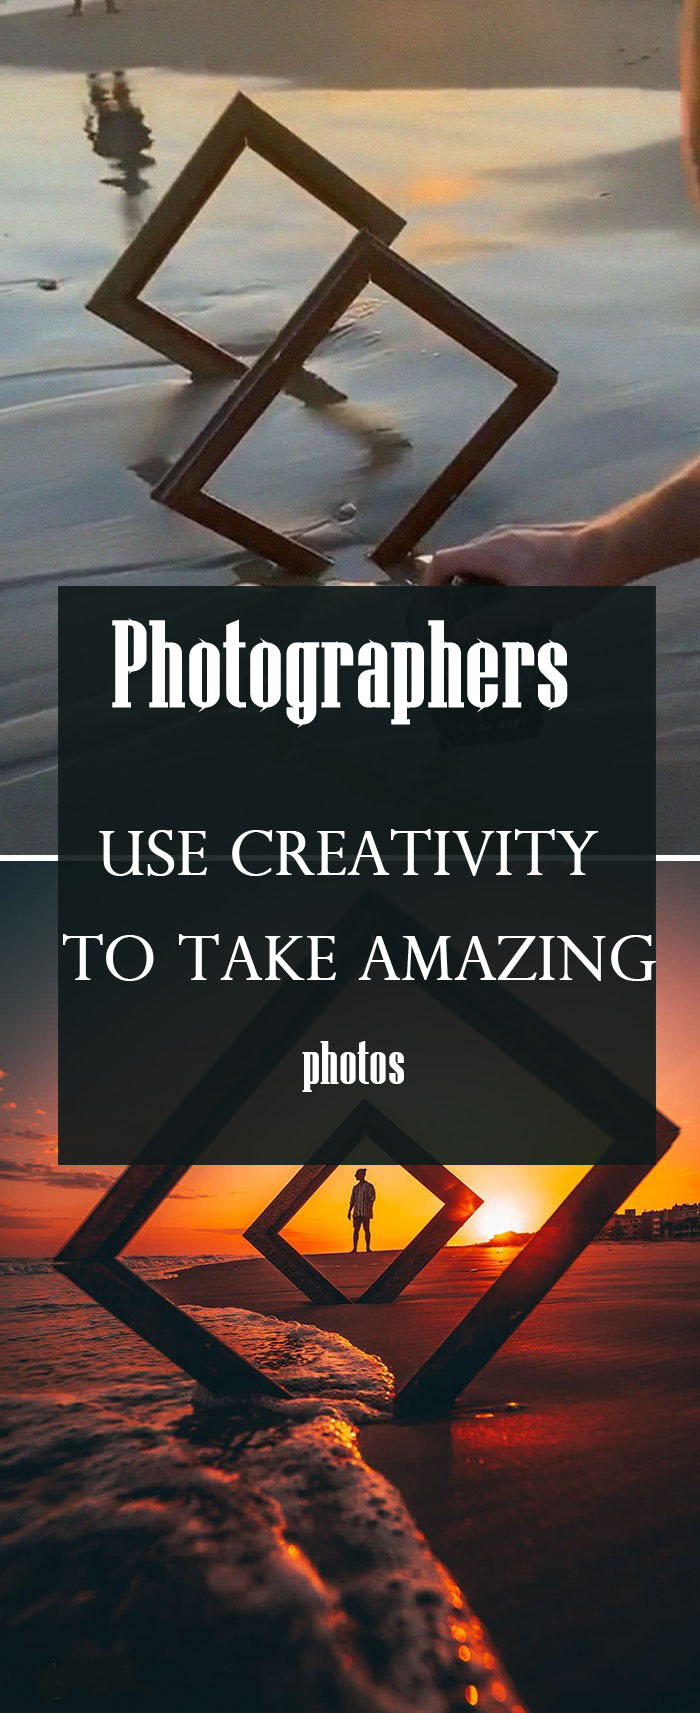 Photographers use creativity to take amazing photos-jordi koalitic